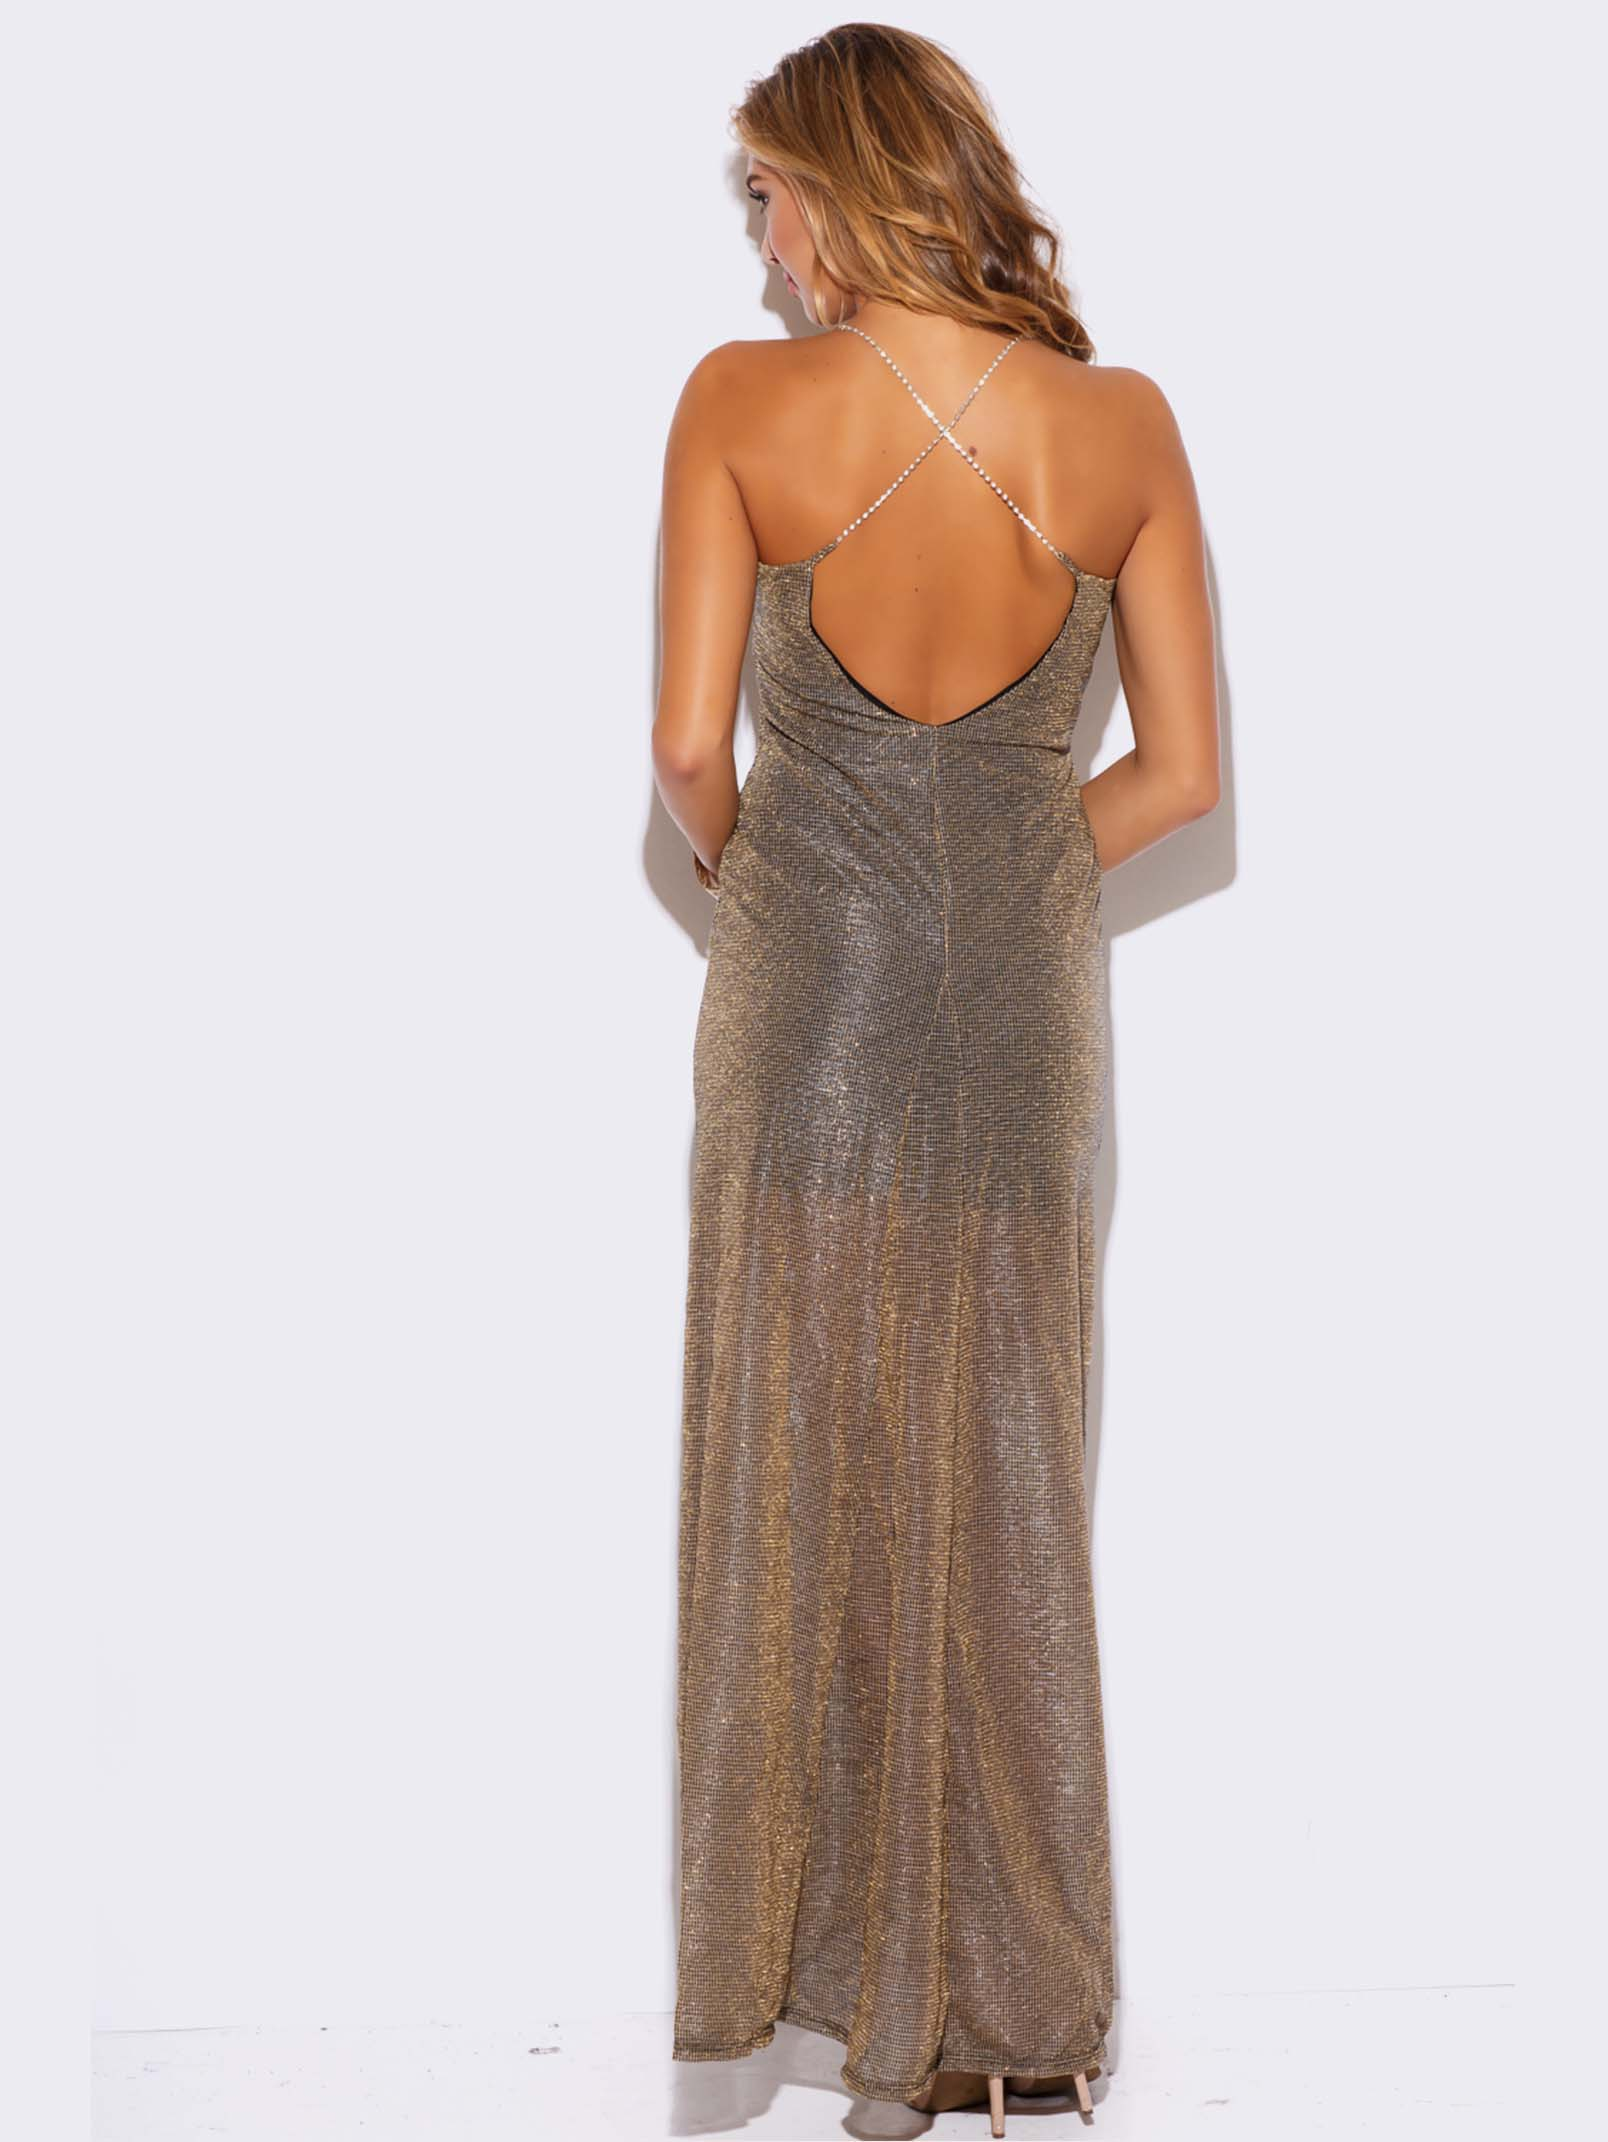 GOLD METALLIC MESH FORMAL DRESS